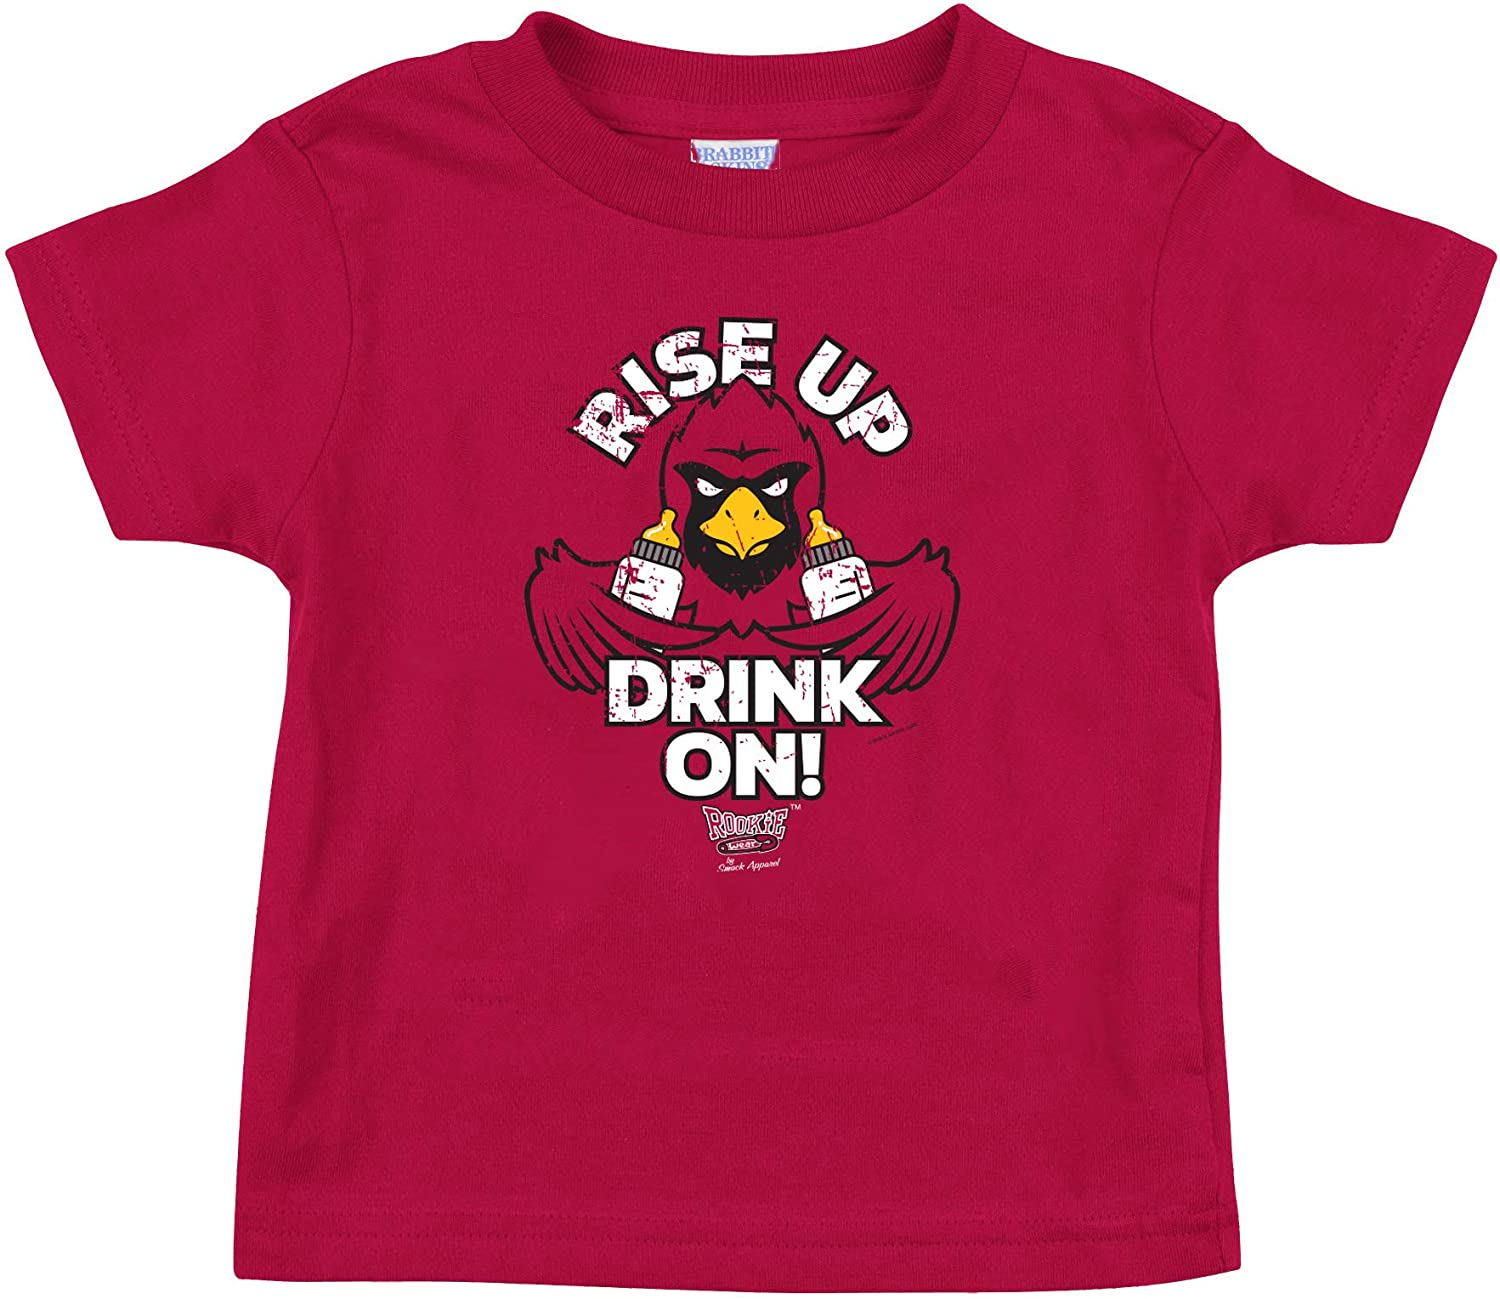 Forest Onesie Drink Up Fly High or Toddler Tee Rookie Wear by Smack Apparel Philadelphia Football Fans NB-18M 2T-4T